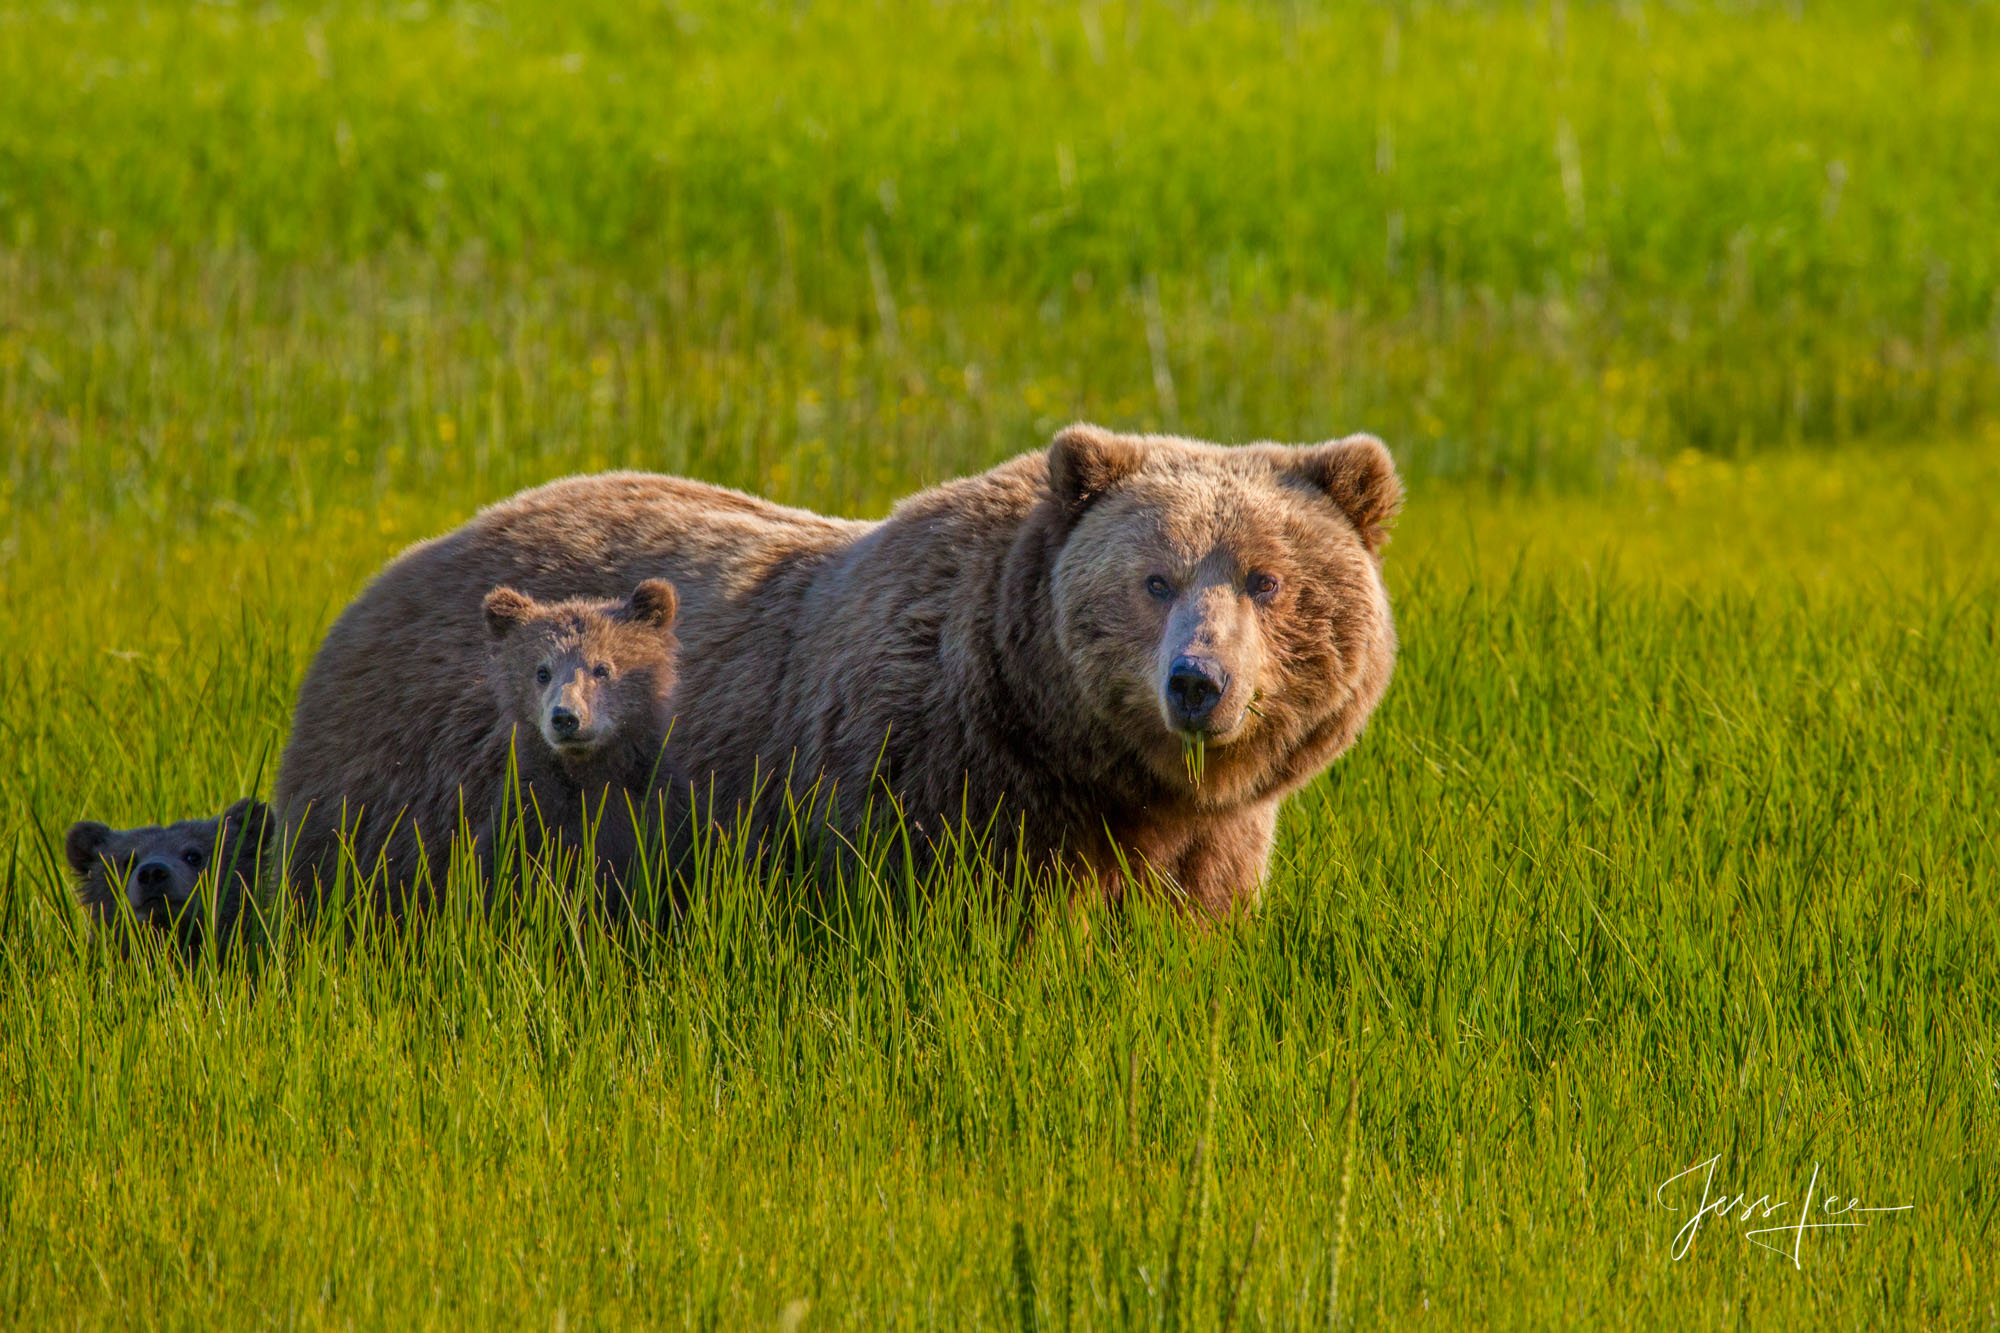 Alaska*, bear*, brown bear*, brown bears*, brown*, coastal*, cubs*, grizzlies*, Grizzly*, Jess Lee*, Cooke inlet, legendary photographer*, national park*, sow*, wildlife*, wildlife photographer*, photo